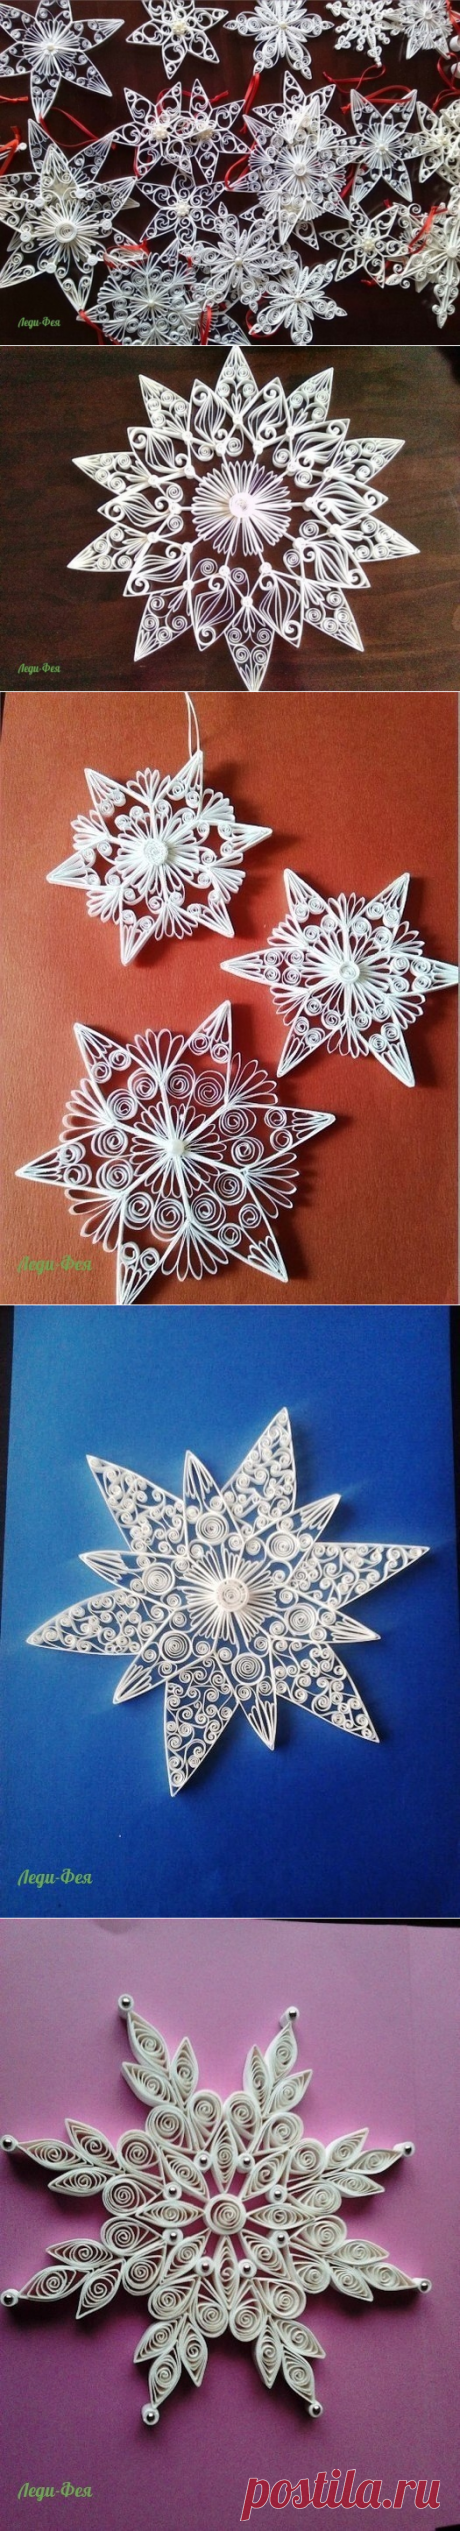 Charm of snowflakes in equipment a kvilling